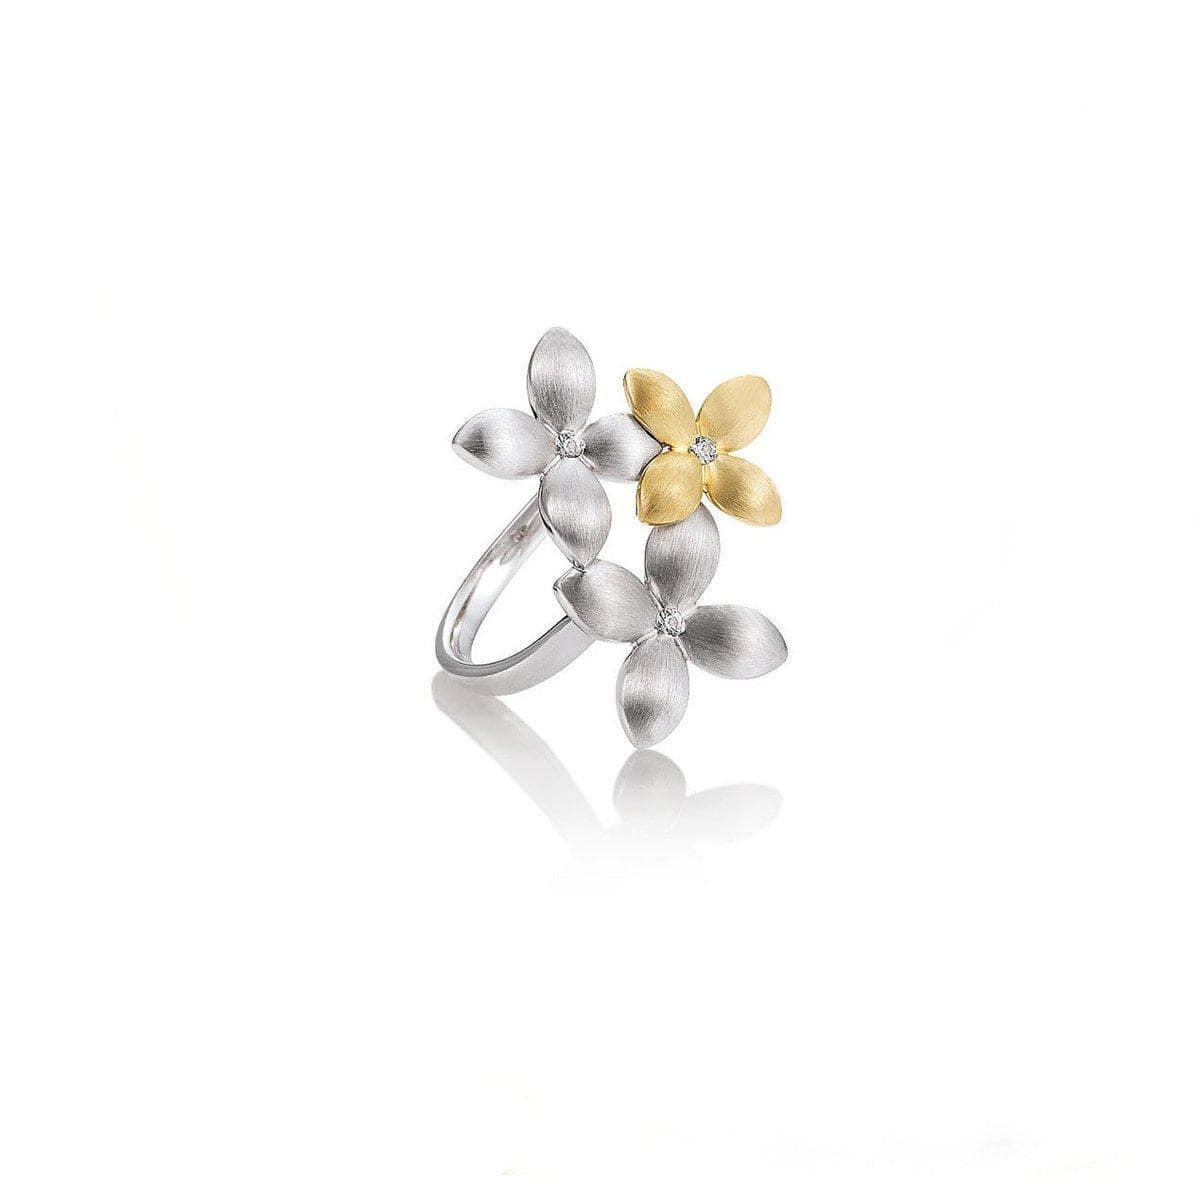 Yellow Gold & Rhodium Plated Sterling Silver White Sapphire Ring - 42/03204-Breuning-Renee Taylor Gallery